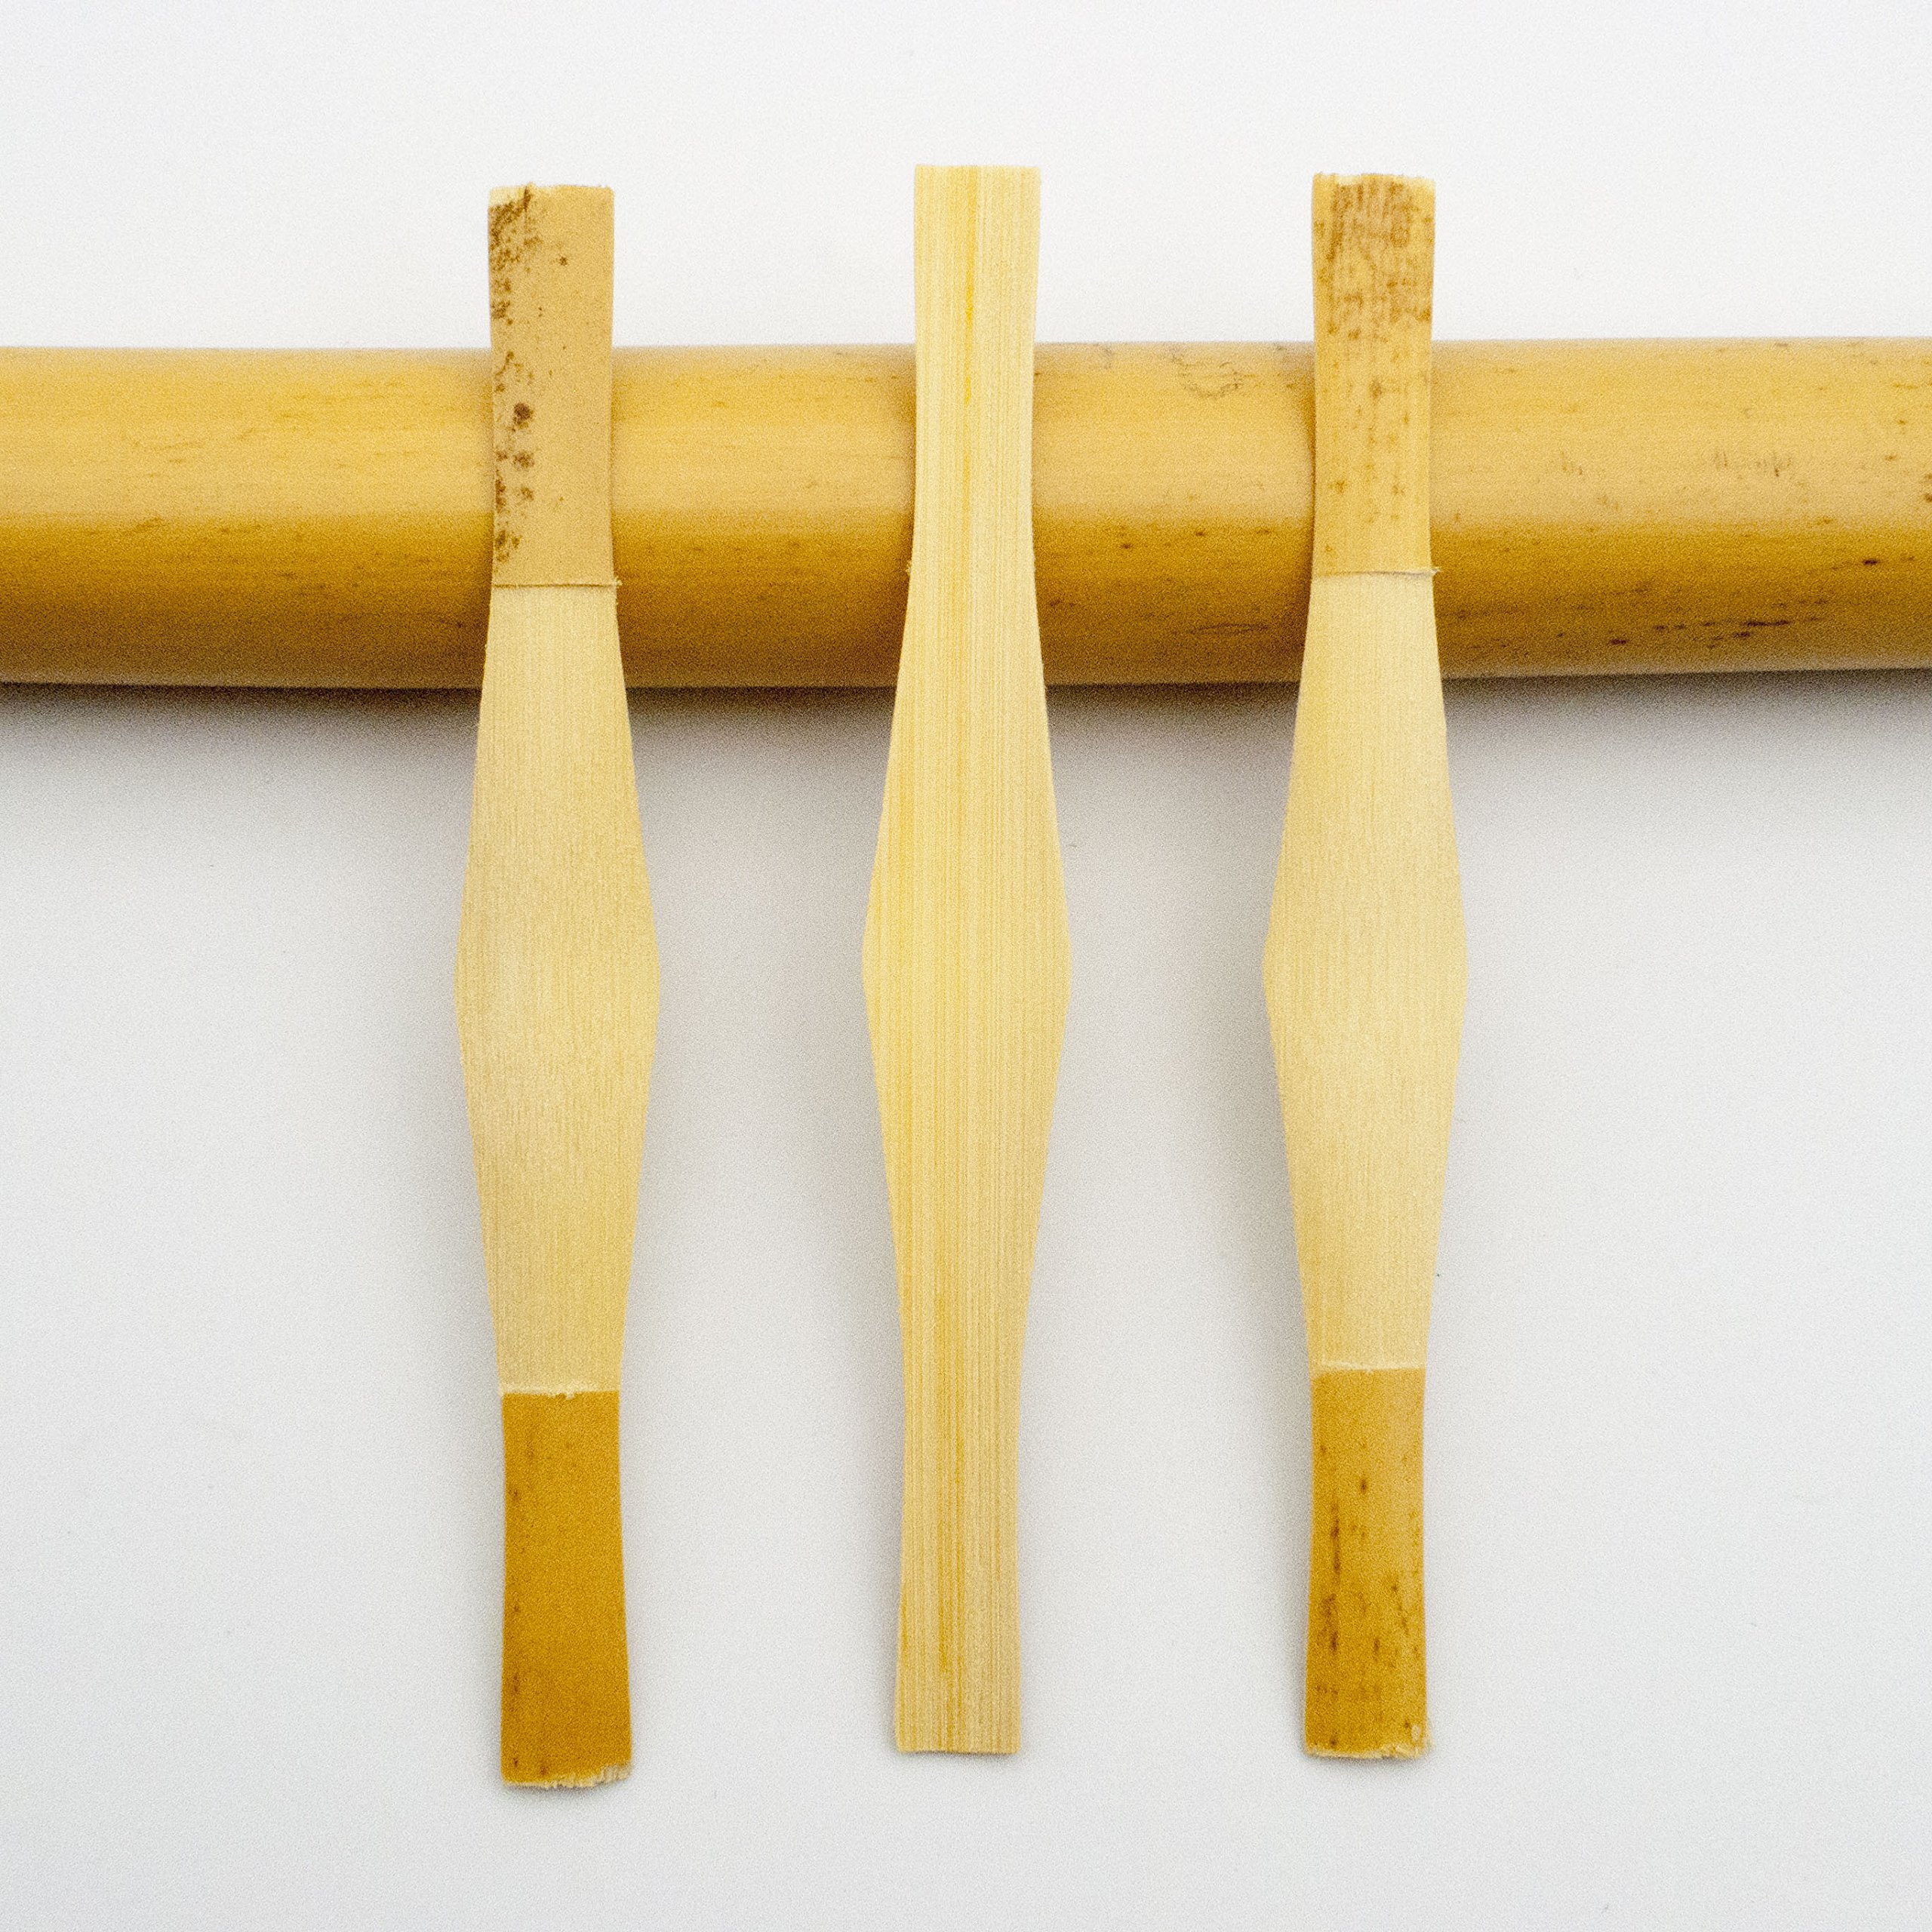 10* Reed123 Gouged Shaped & Profiled Canes